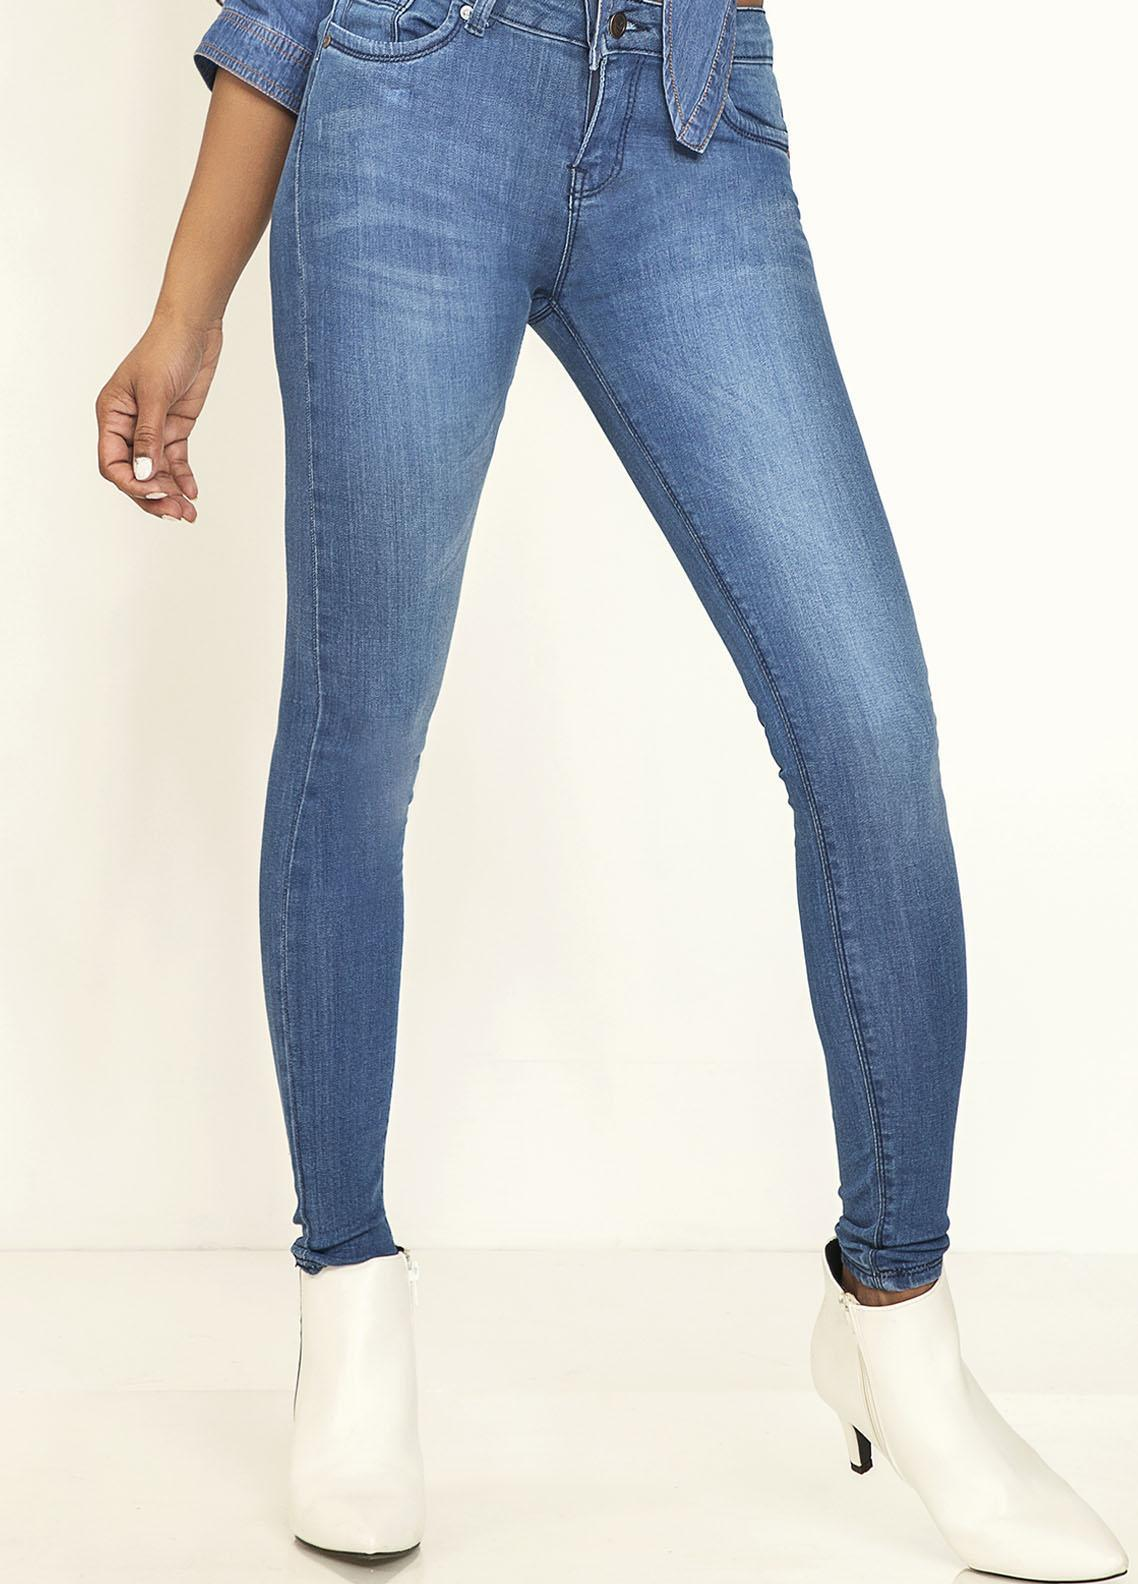 Kross Kulture Perfect Curves Denim Jeans KWA-20-004 MBU